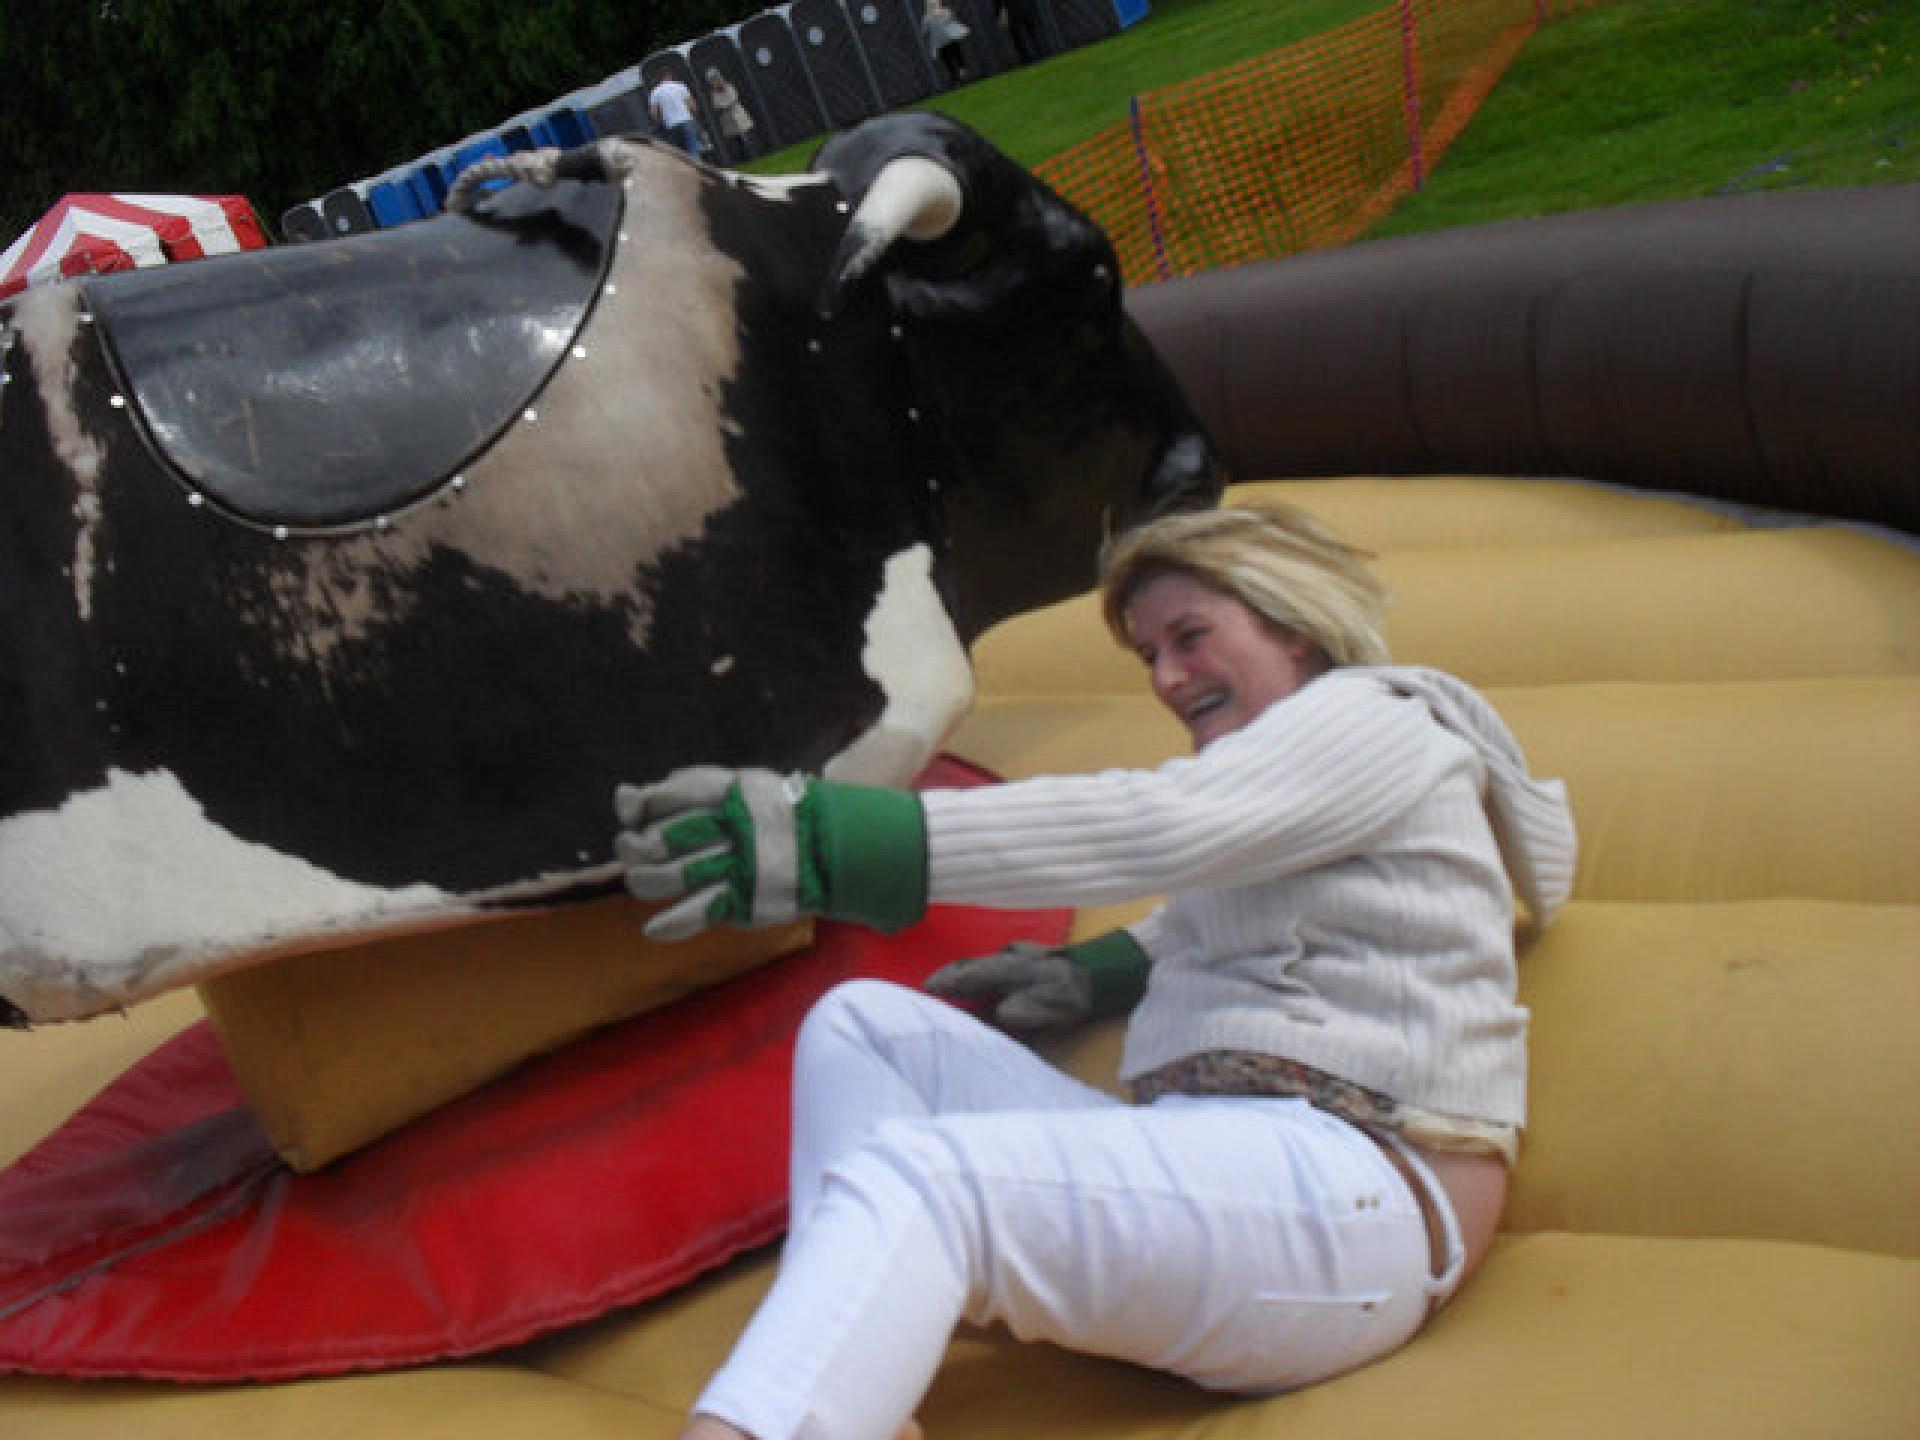 Bucking Bronco - Inflatable Fun